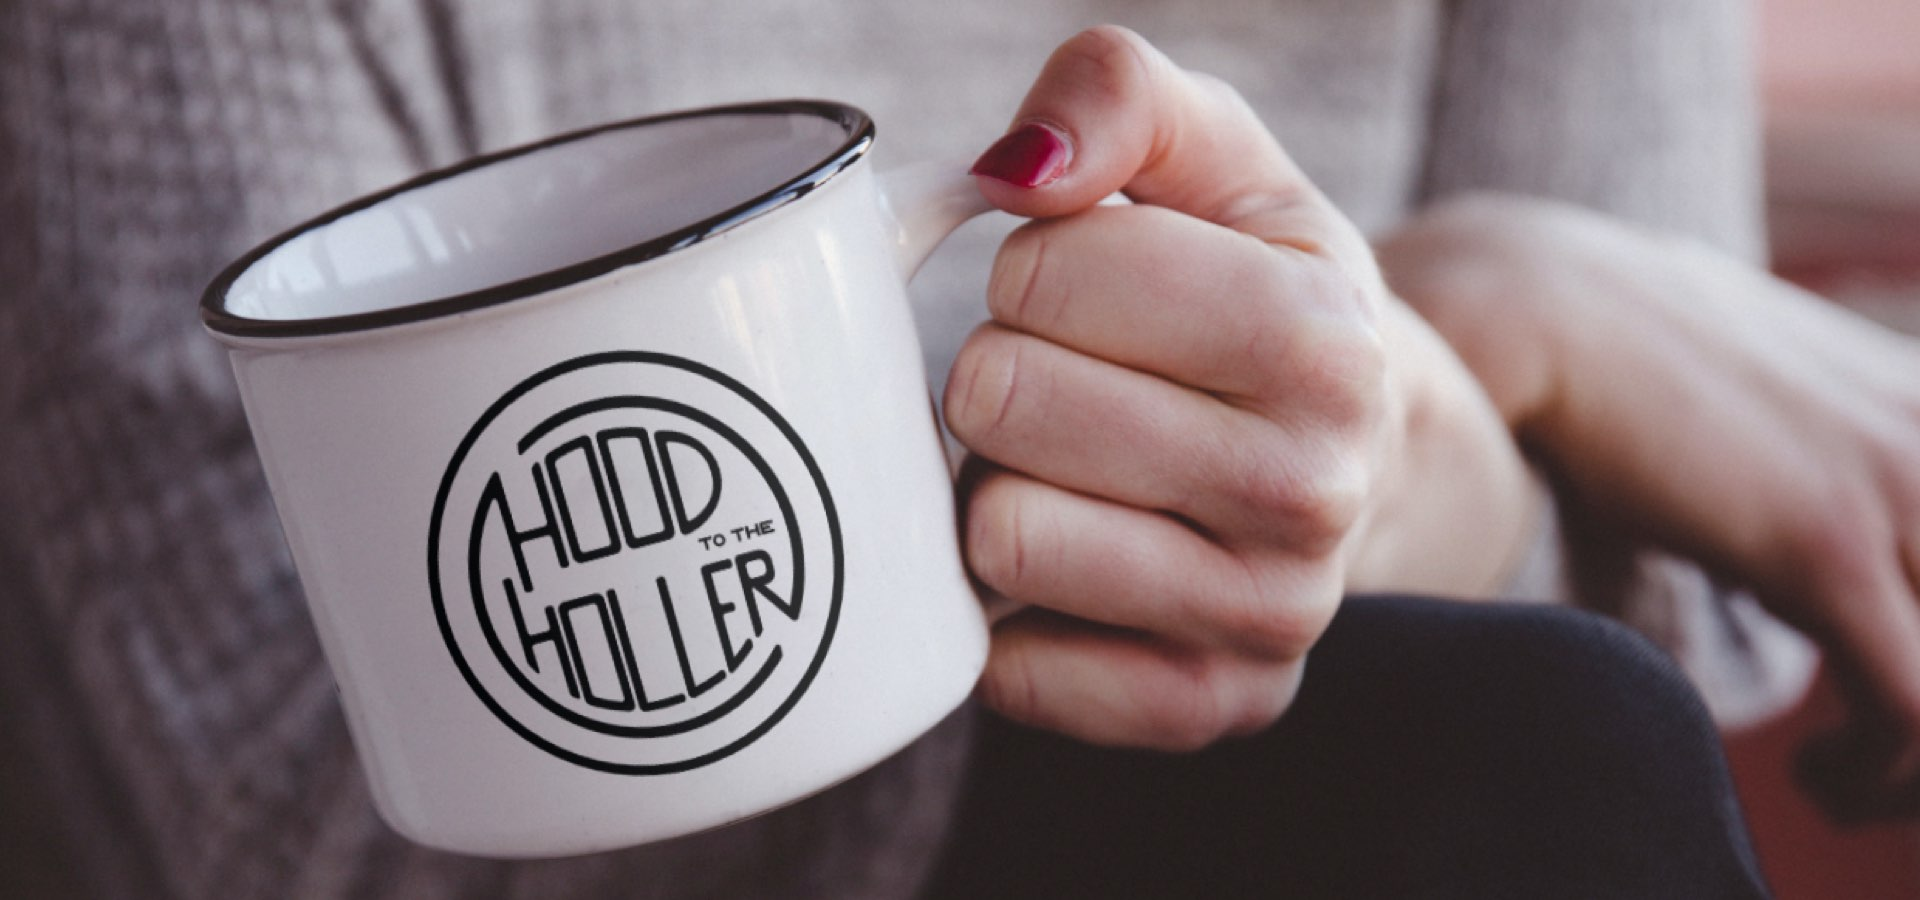 Hood to the Holler mug